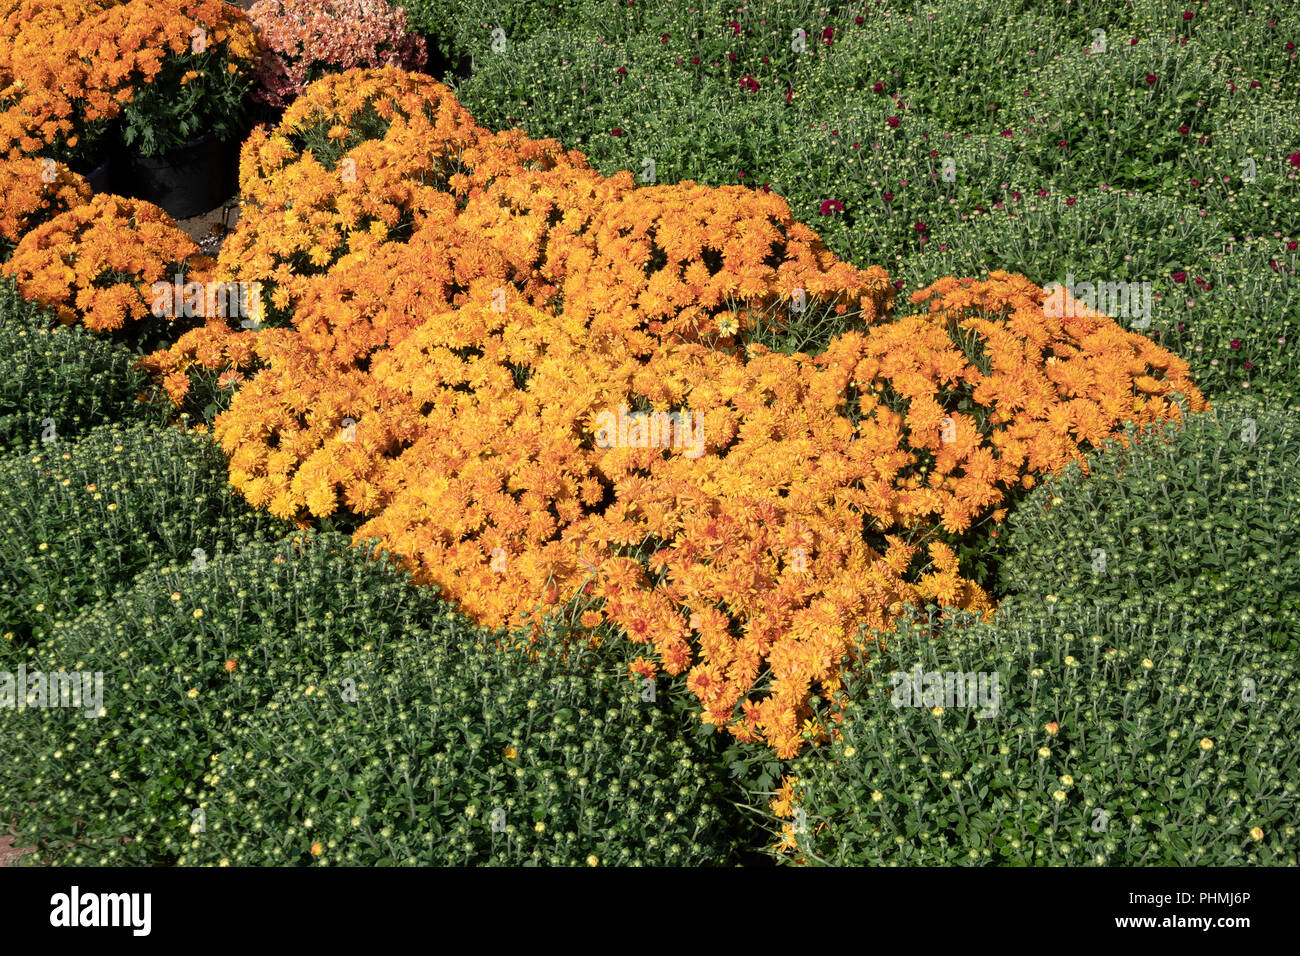 Potted orange garden mums for sale at a Montreal supermarket - Stock Image